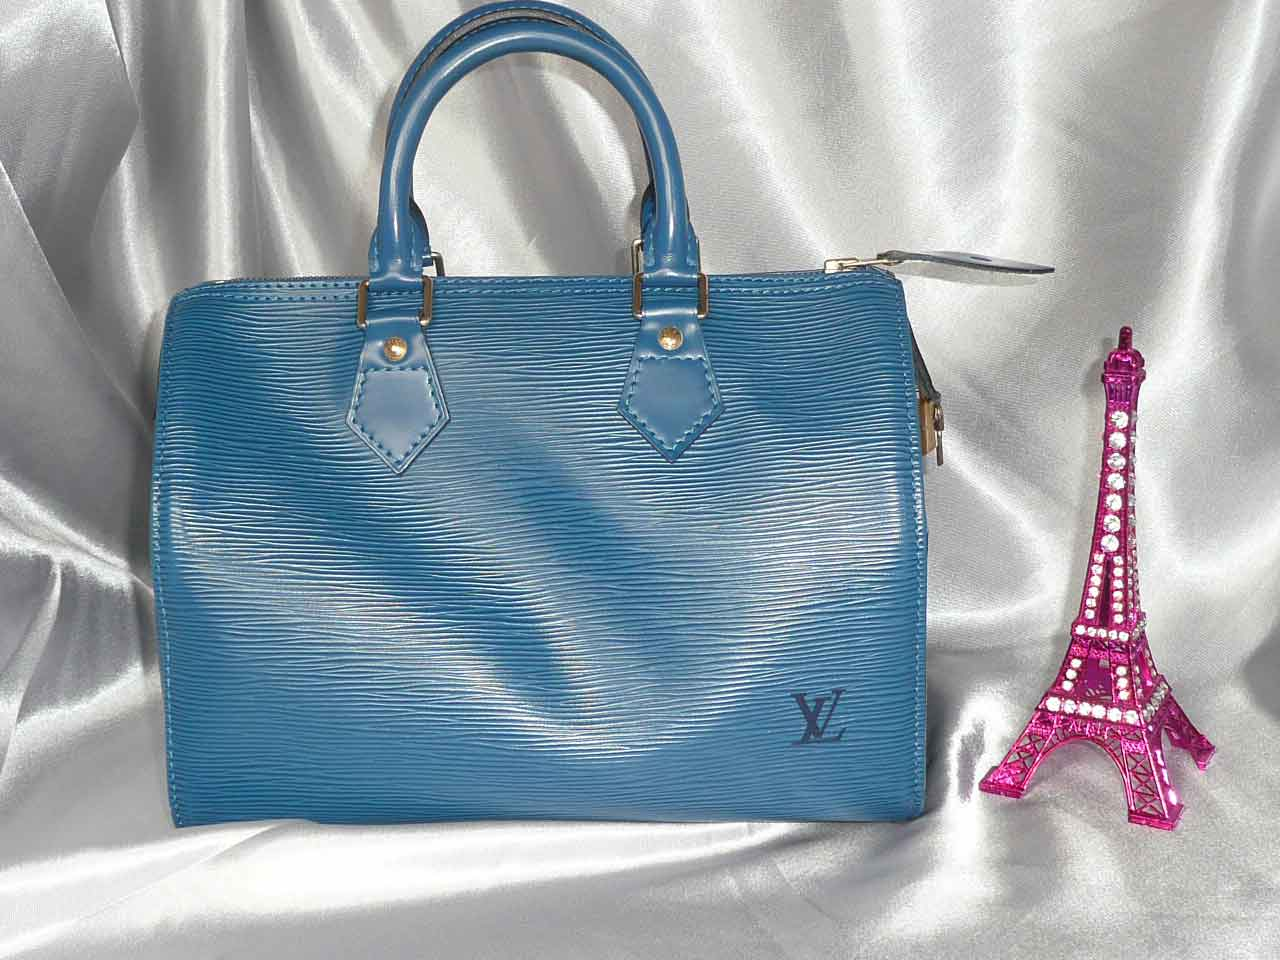 Louis Vuitton Speedy 25 cuir épi bleu